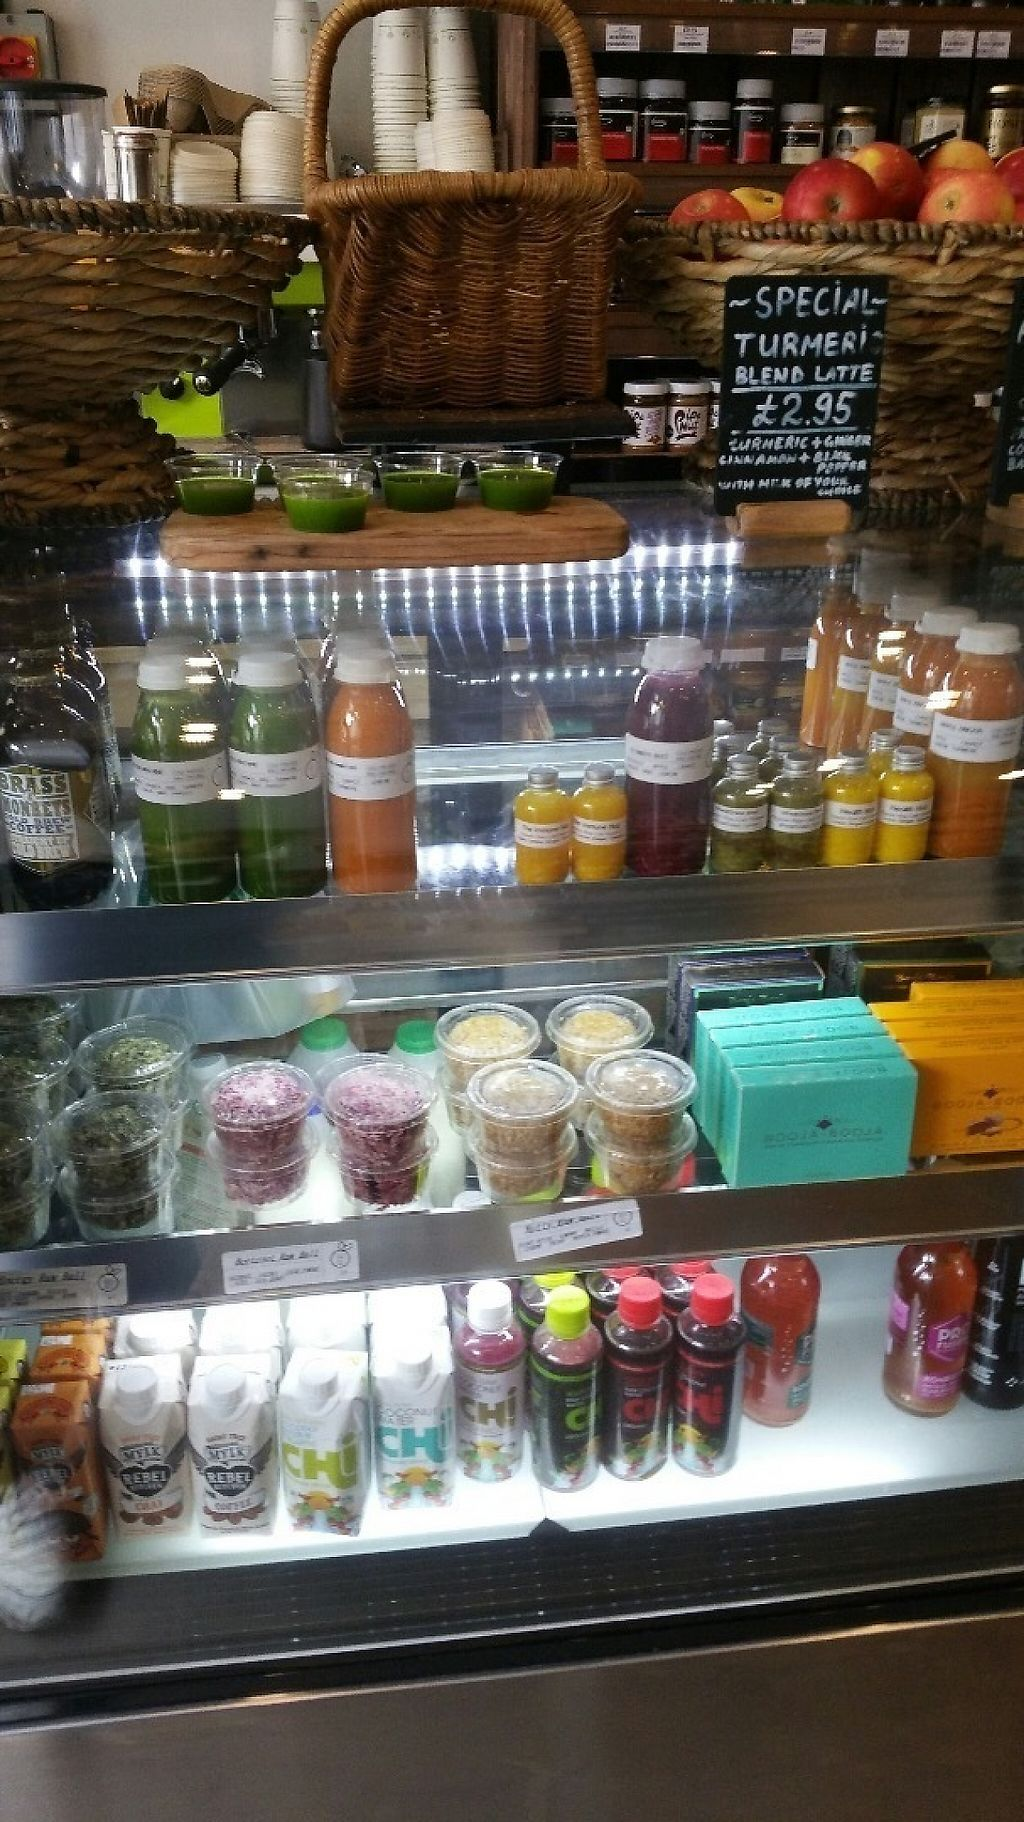 """Photo of Sprout Juicery  by <a href=""""/members/profile/jollypig"""">jollypig</a> <br/>More things at the bar <br/> April 29, 2017  - <a href='/contact/abuse/image/48895/253683'>Report</a>"""